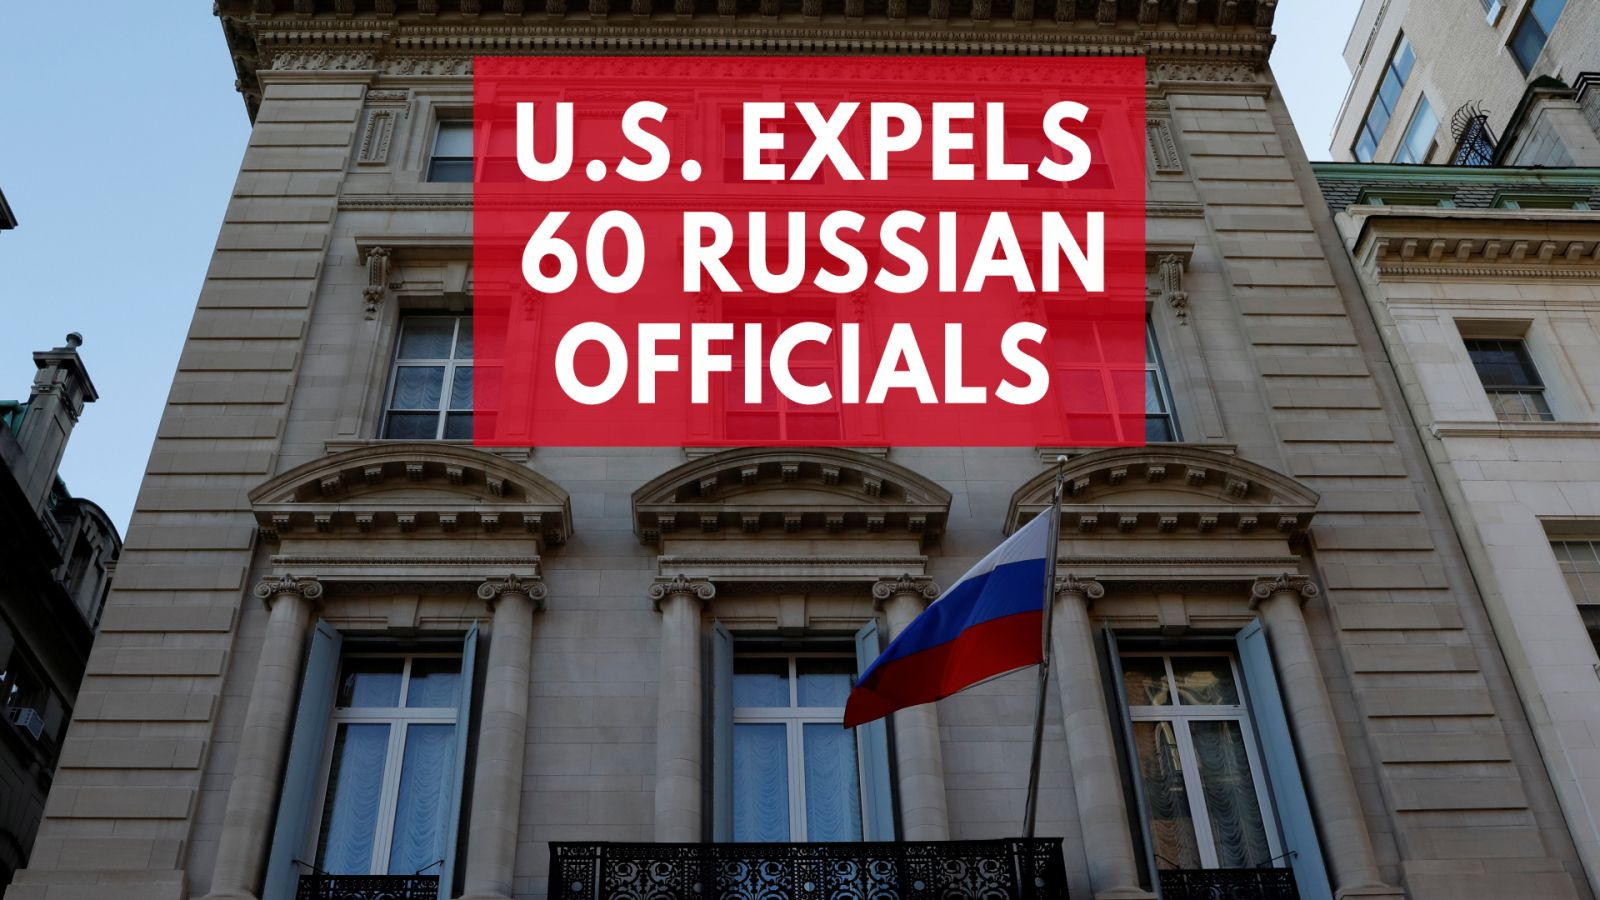 u-s-expels-60-russian-officials-over-poisoning-of-former-spy-sergei-skripal